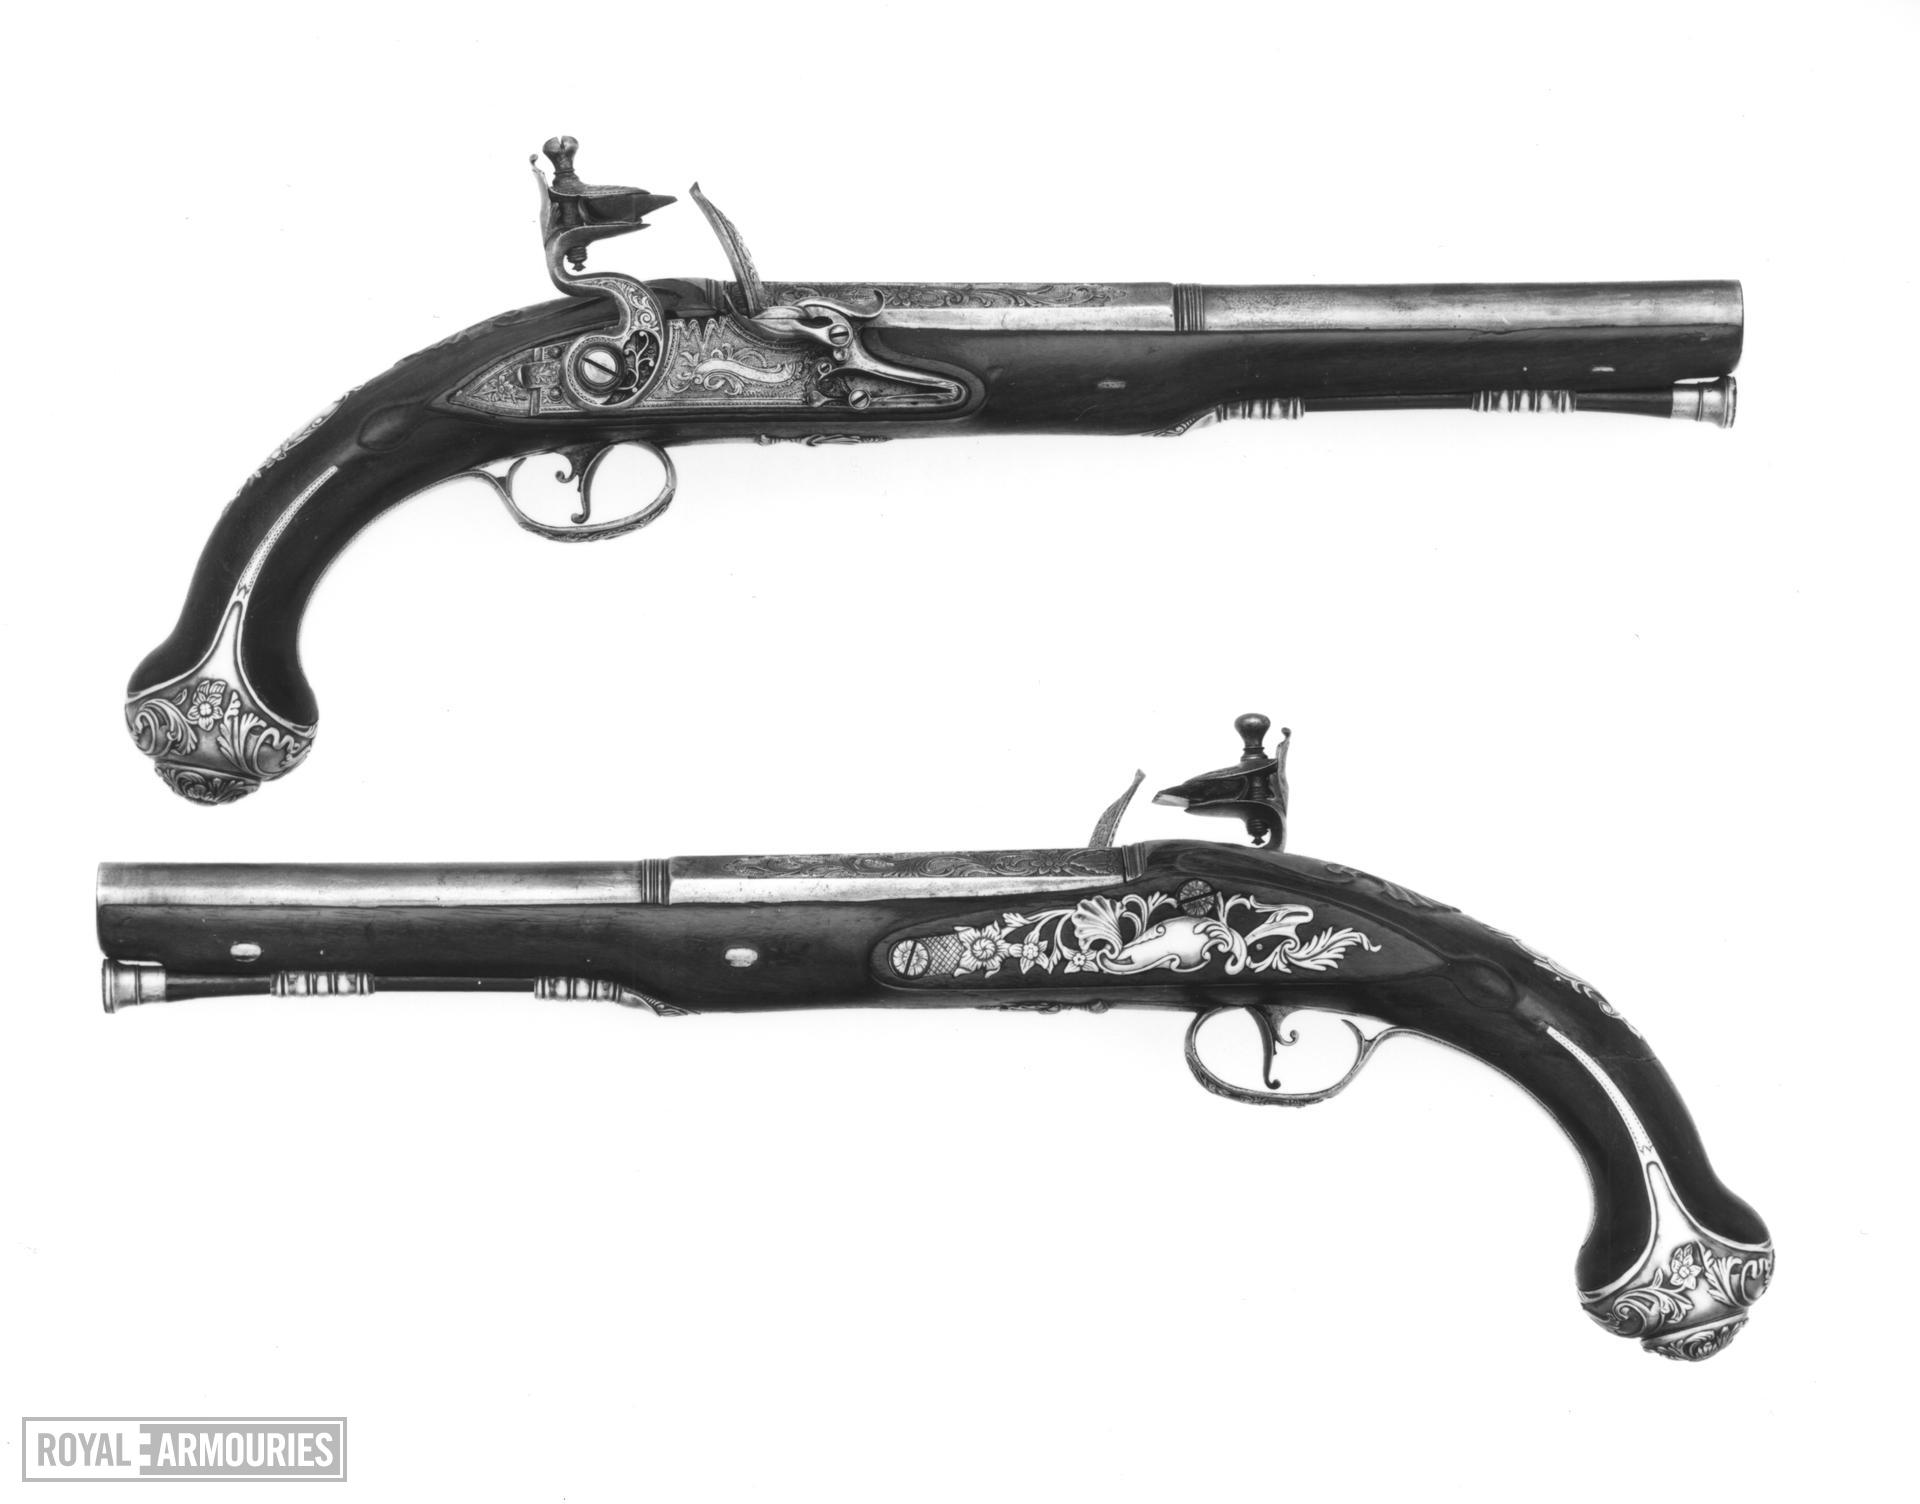 Flintlock magazine pistol